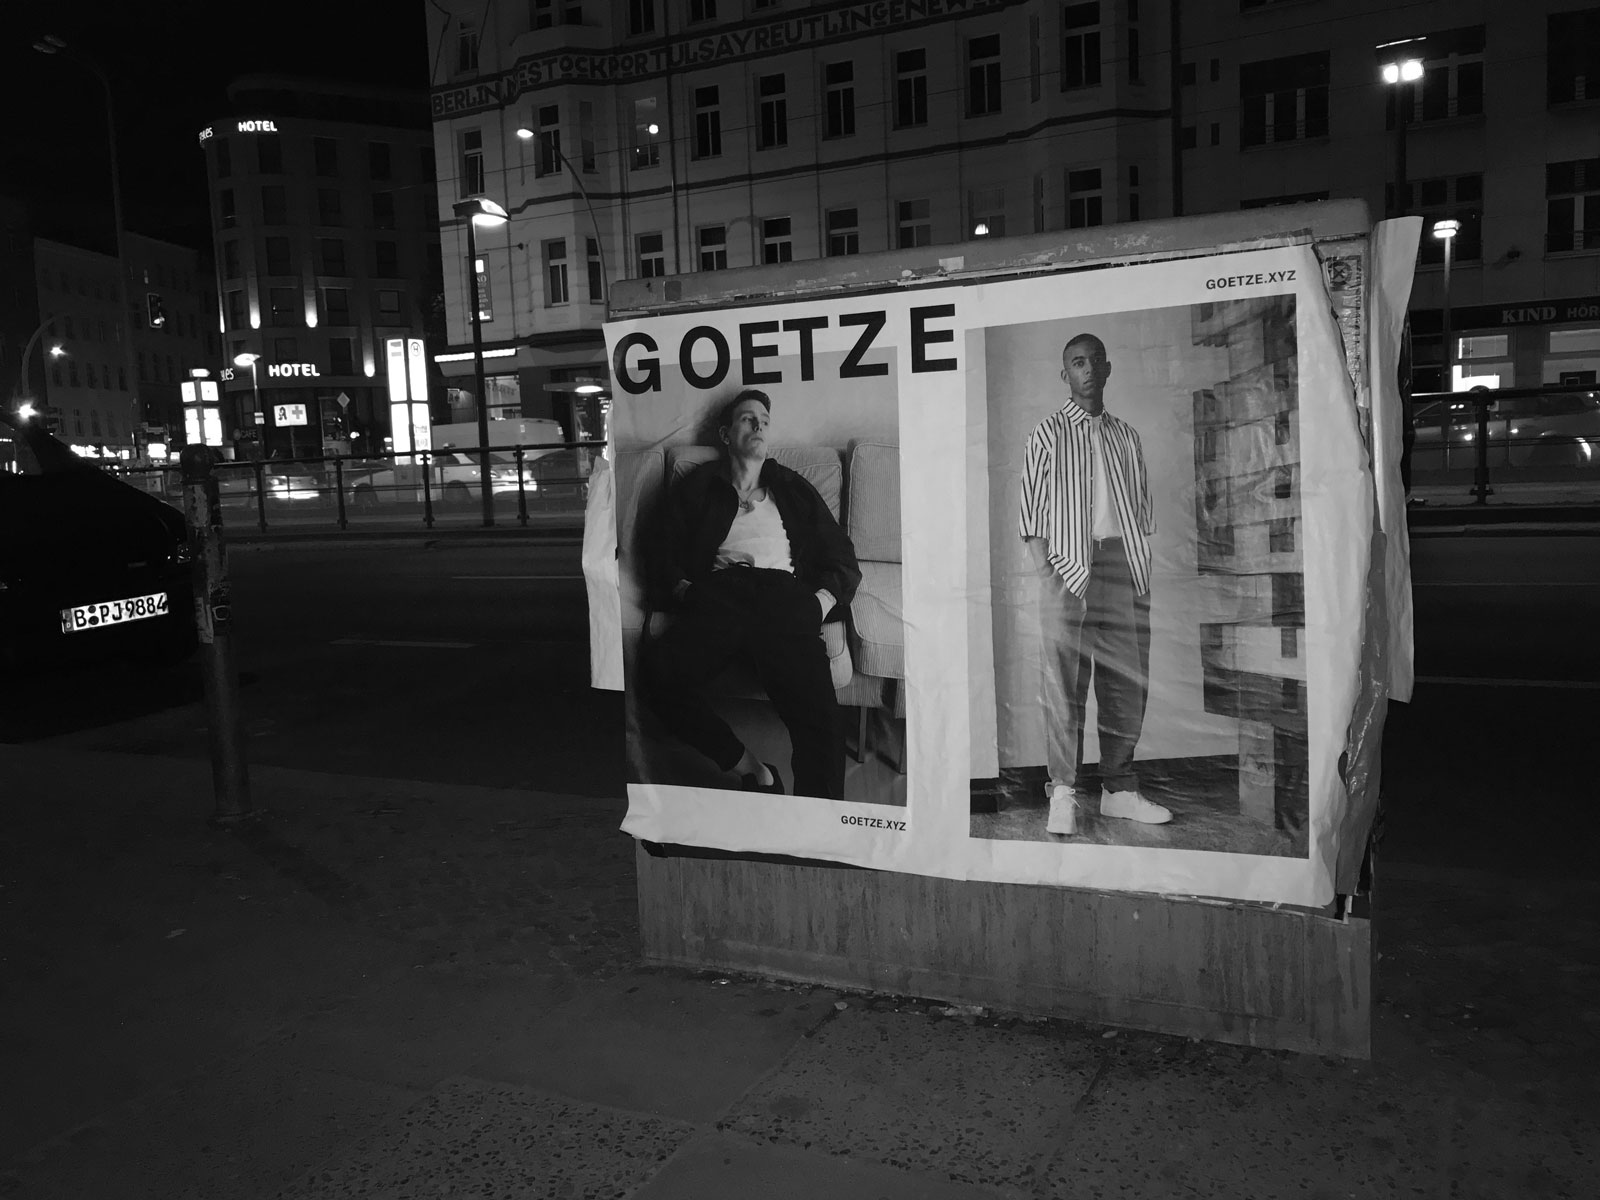 OLIVER MOORE Art Direction and Graphic Design  Idastrasse 17 13156 Berlin  studio@olivermoore.de +49 (0)30 40368971 GOETZE campaign SS17